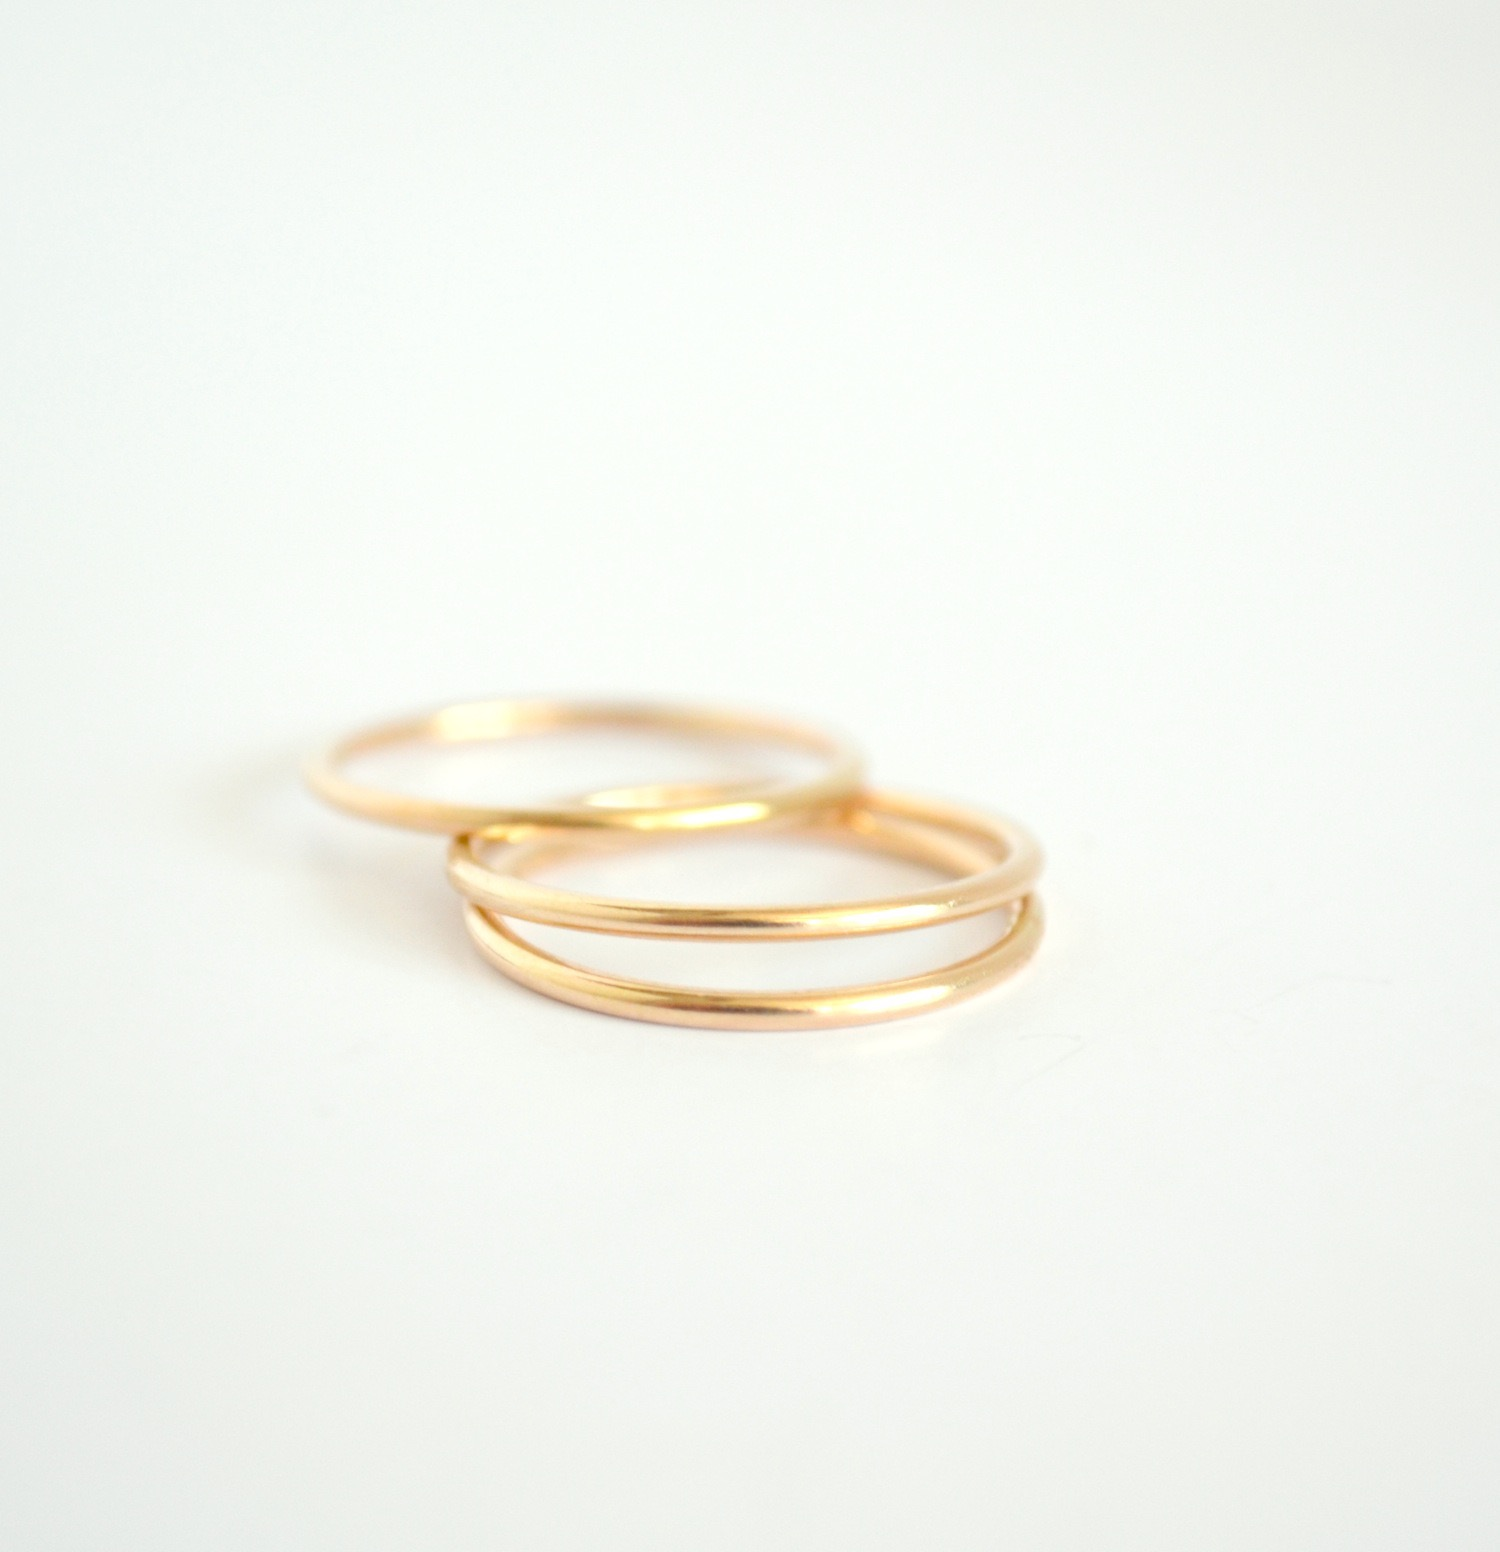 rounded band rings products design by shiree ny ring plain gold yellow wedding odiz